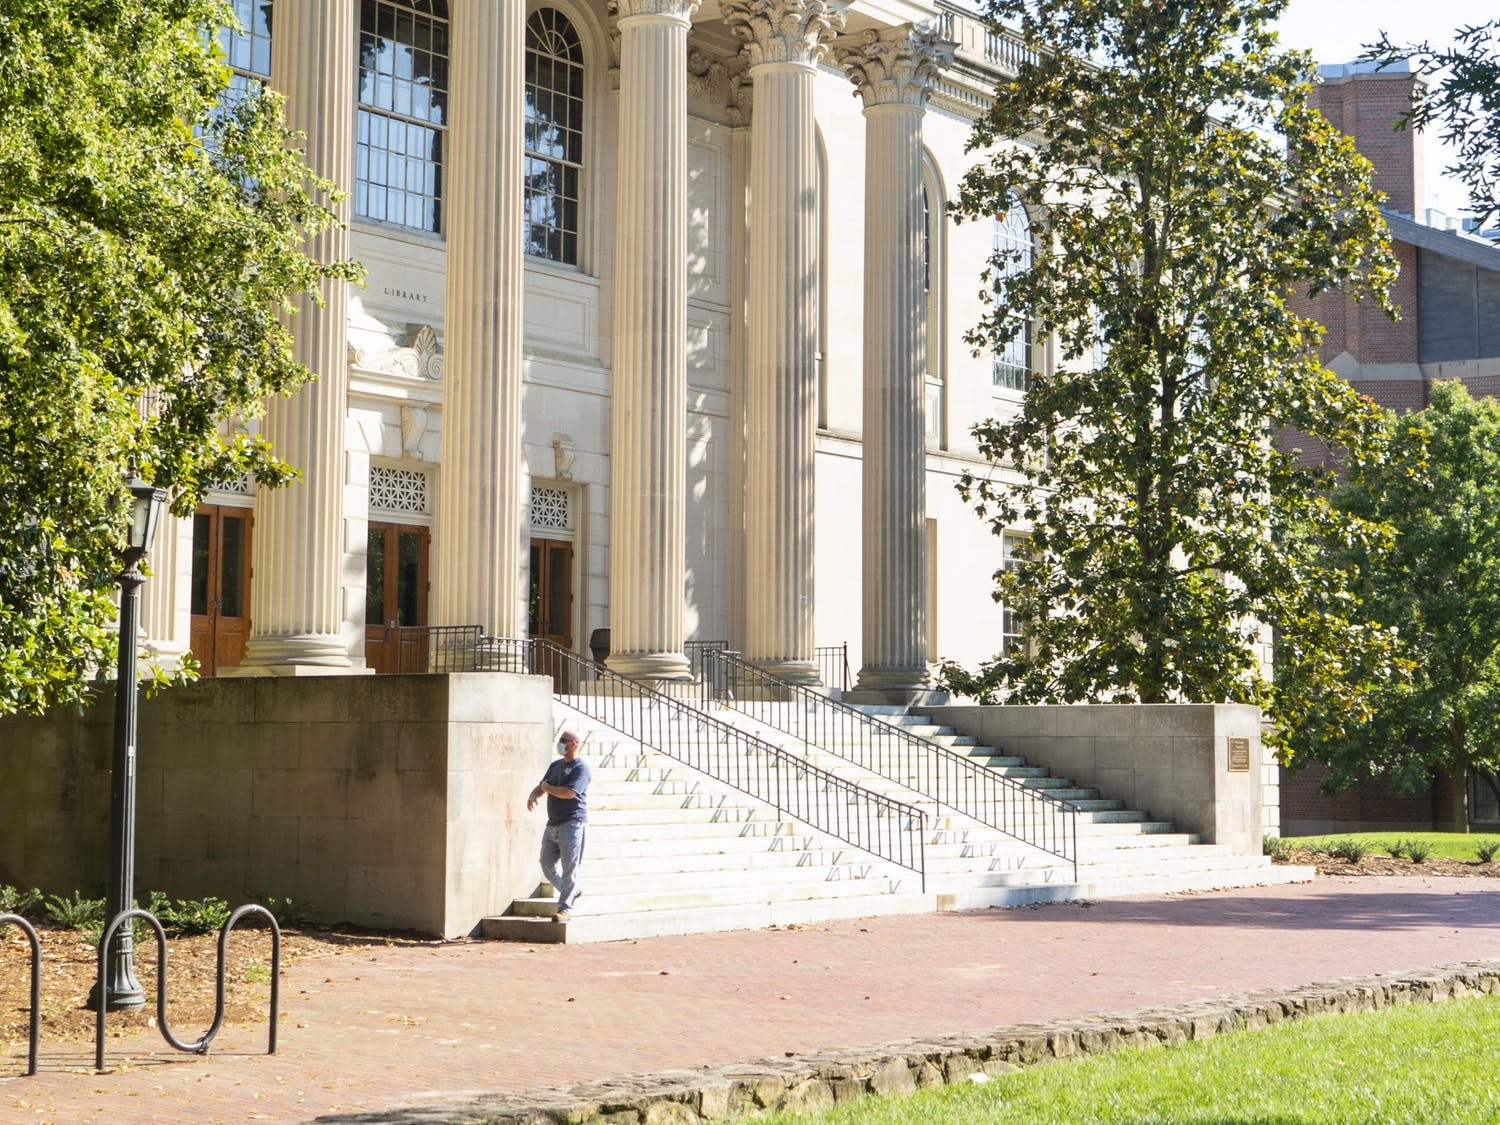 A summer facilities worker walks to the edge of Wilson Library while wearing a mask as a precautionary measure against COVID-19 on Sunday, June 7, 2020.